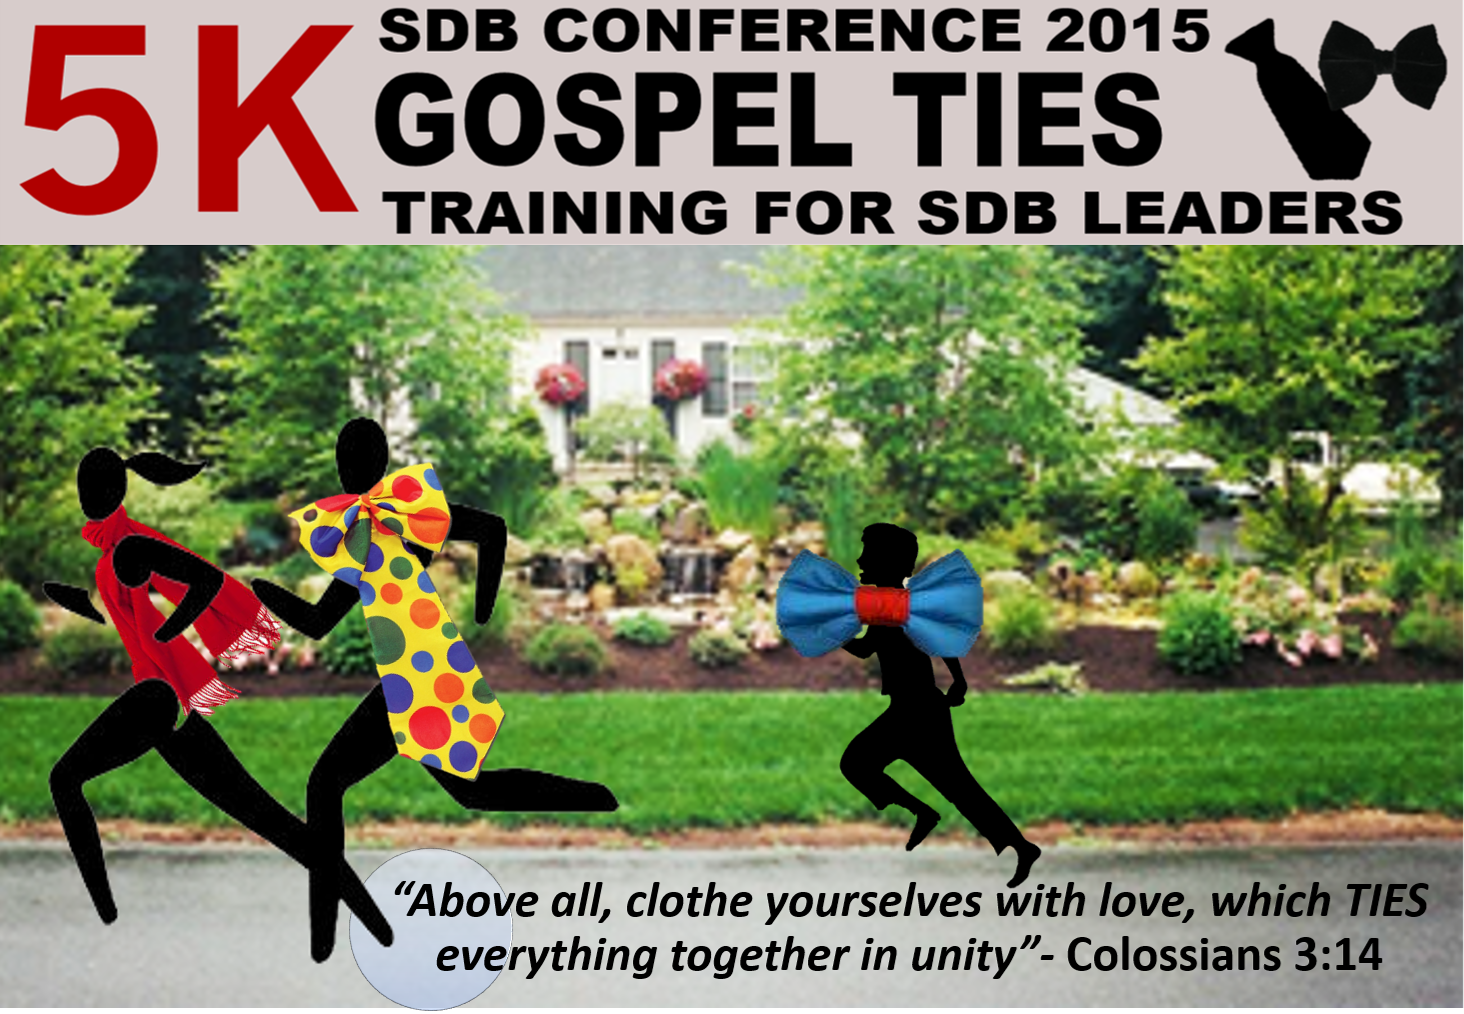 Thumbnail for the post titled: Gospel Ties 5k at Conference 2015